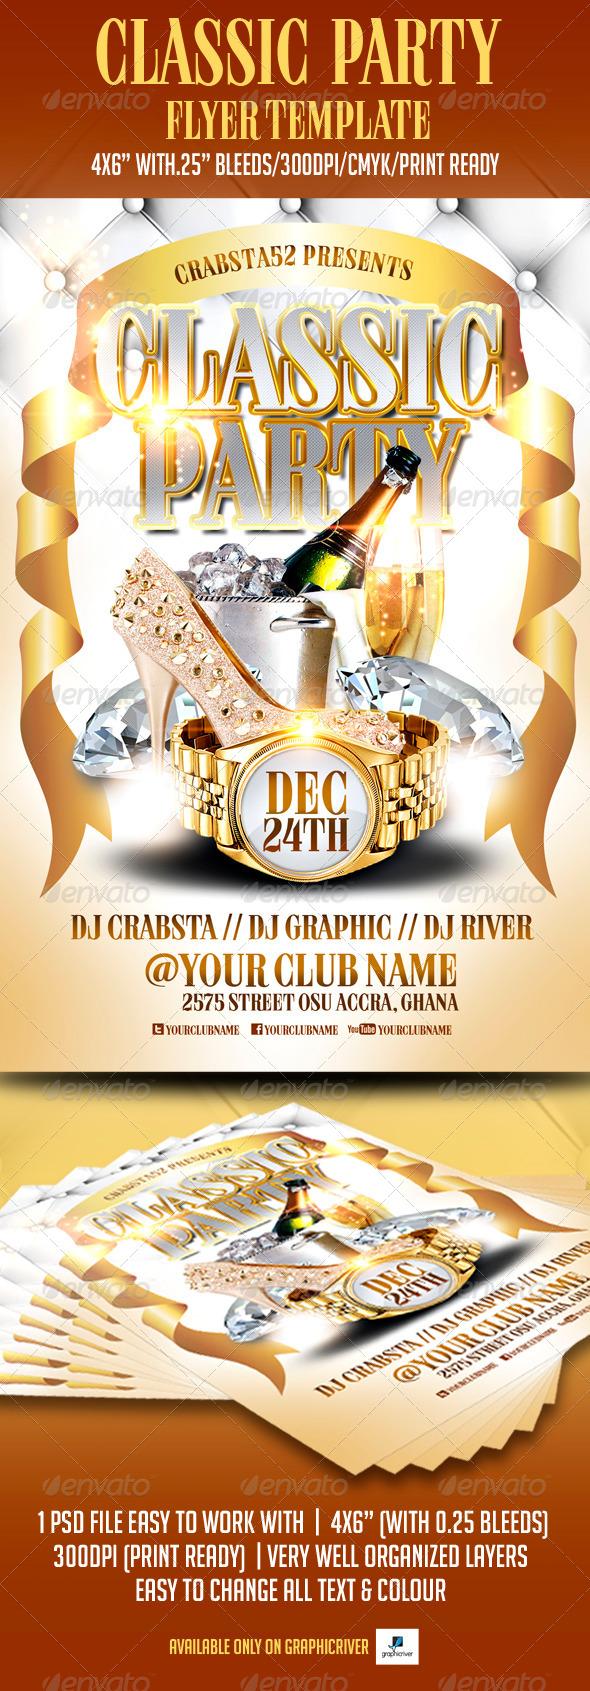 Classic Party Flyer Template - Clubs & Parties Events